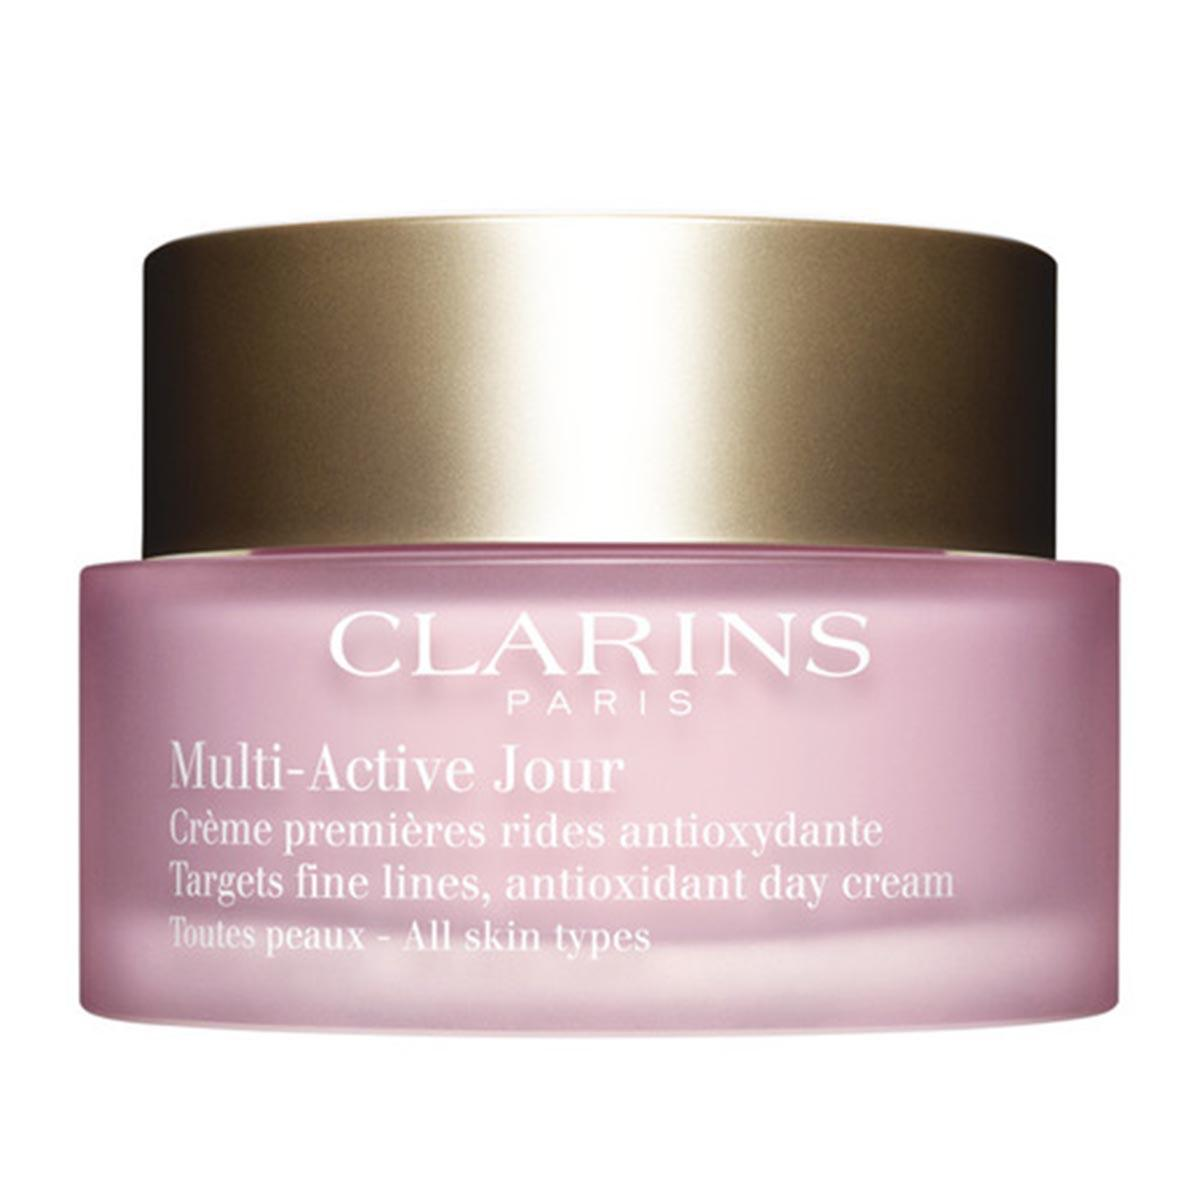 Clarins fragrances Multiactive Day Cream Gel All Skin Types 50ml